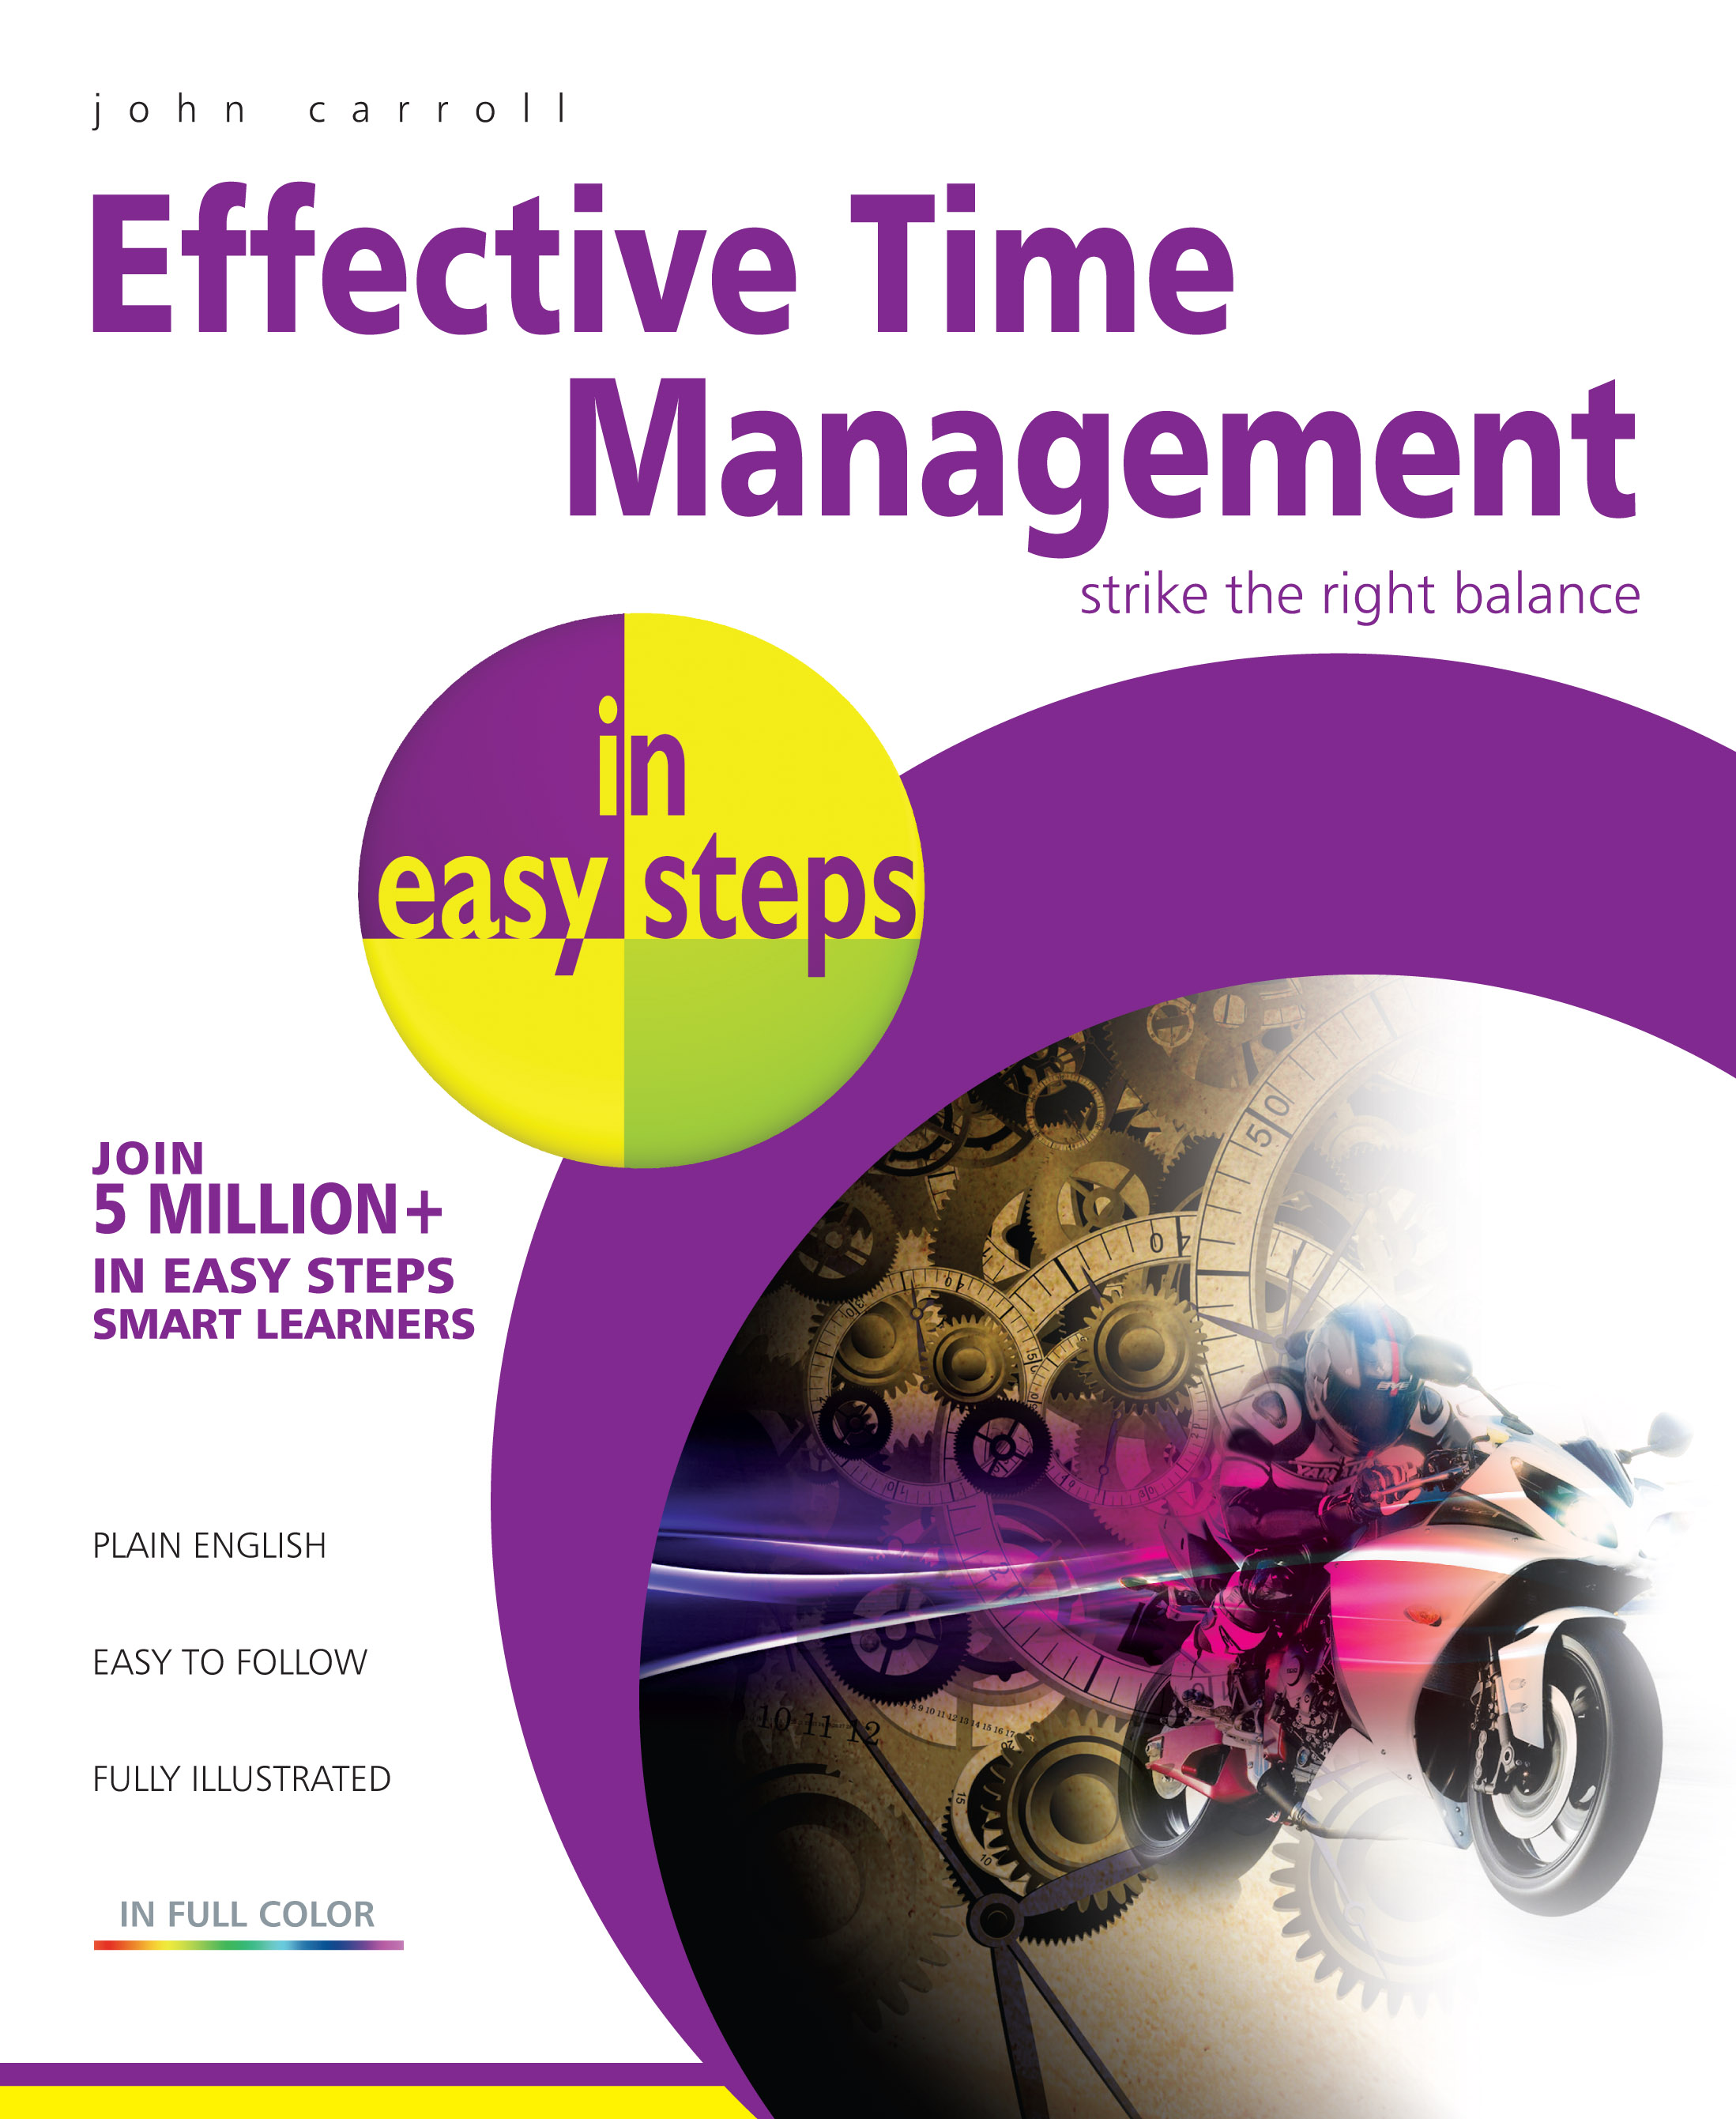 Effective Time Management in easy steps PDF